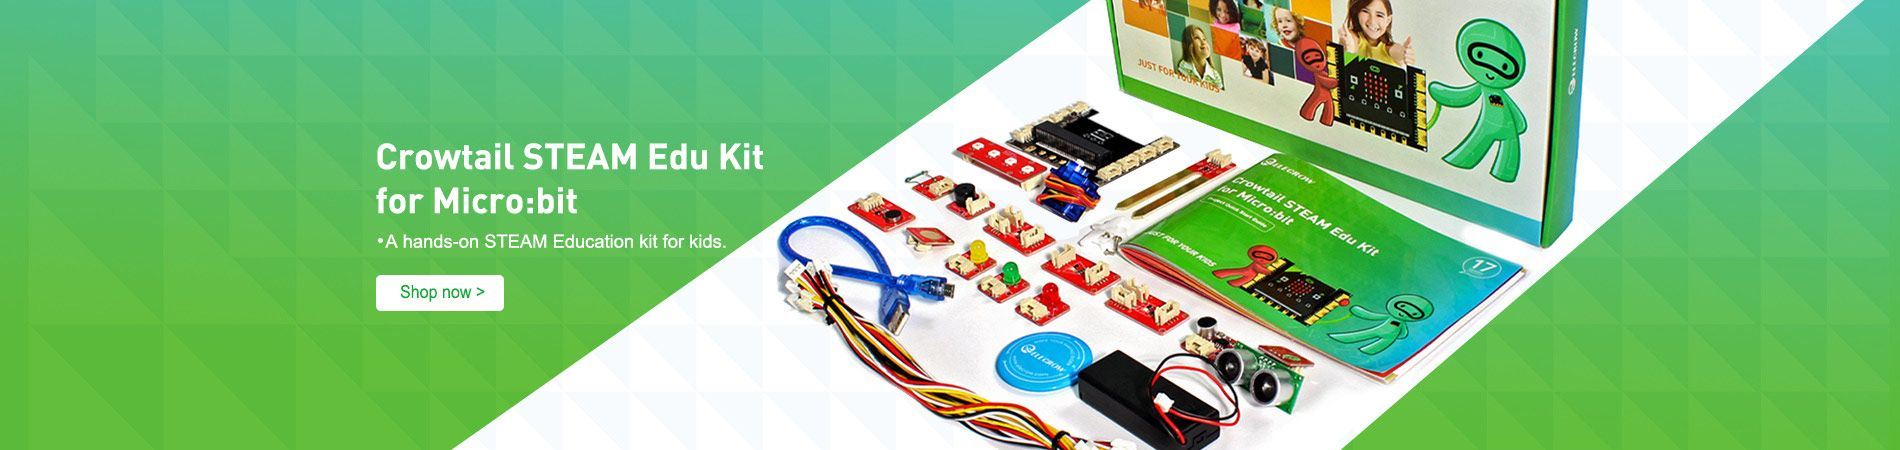 /crowtail-steam-edu-kit-for-micro-bit.html